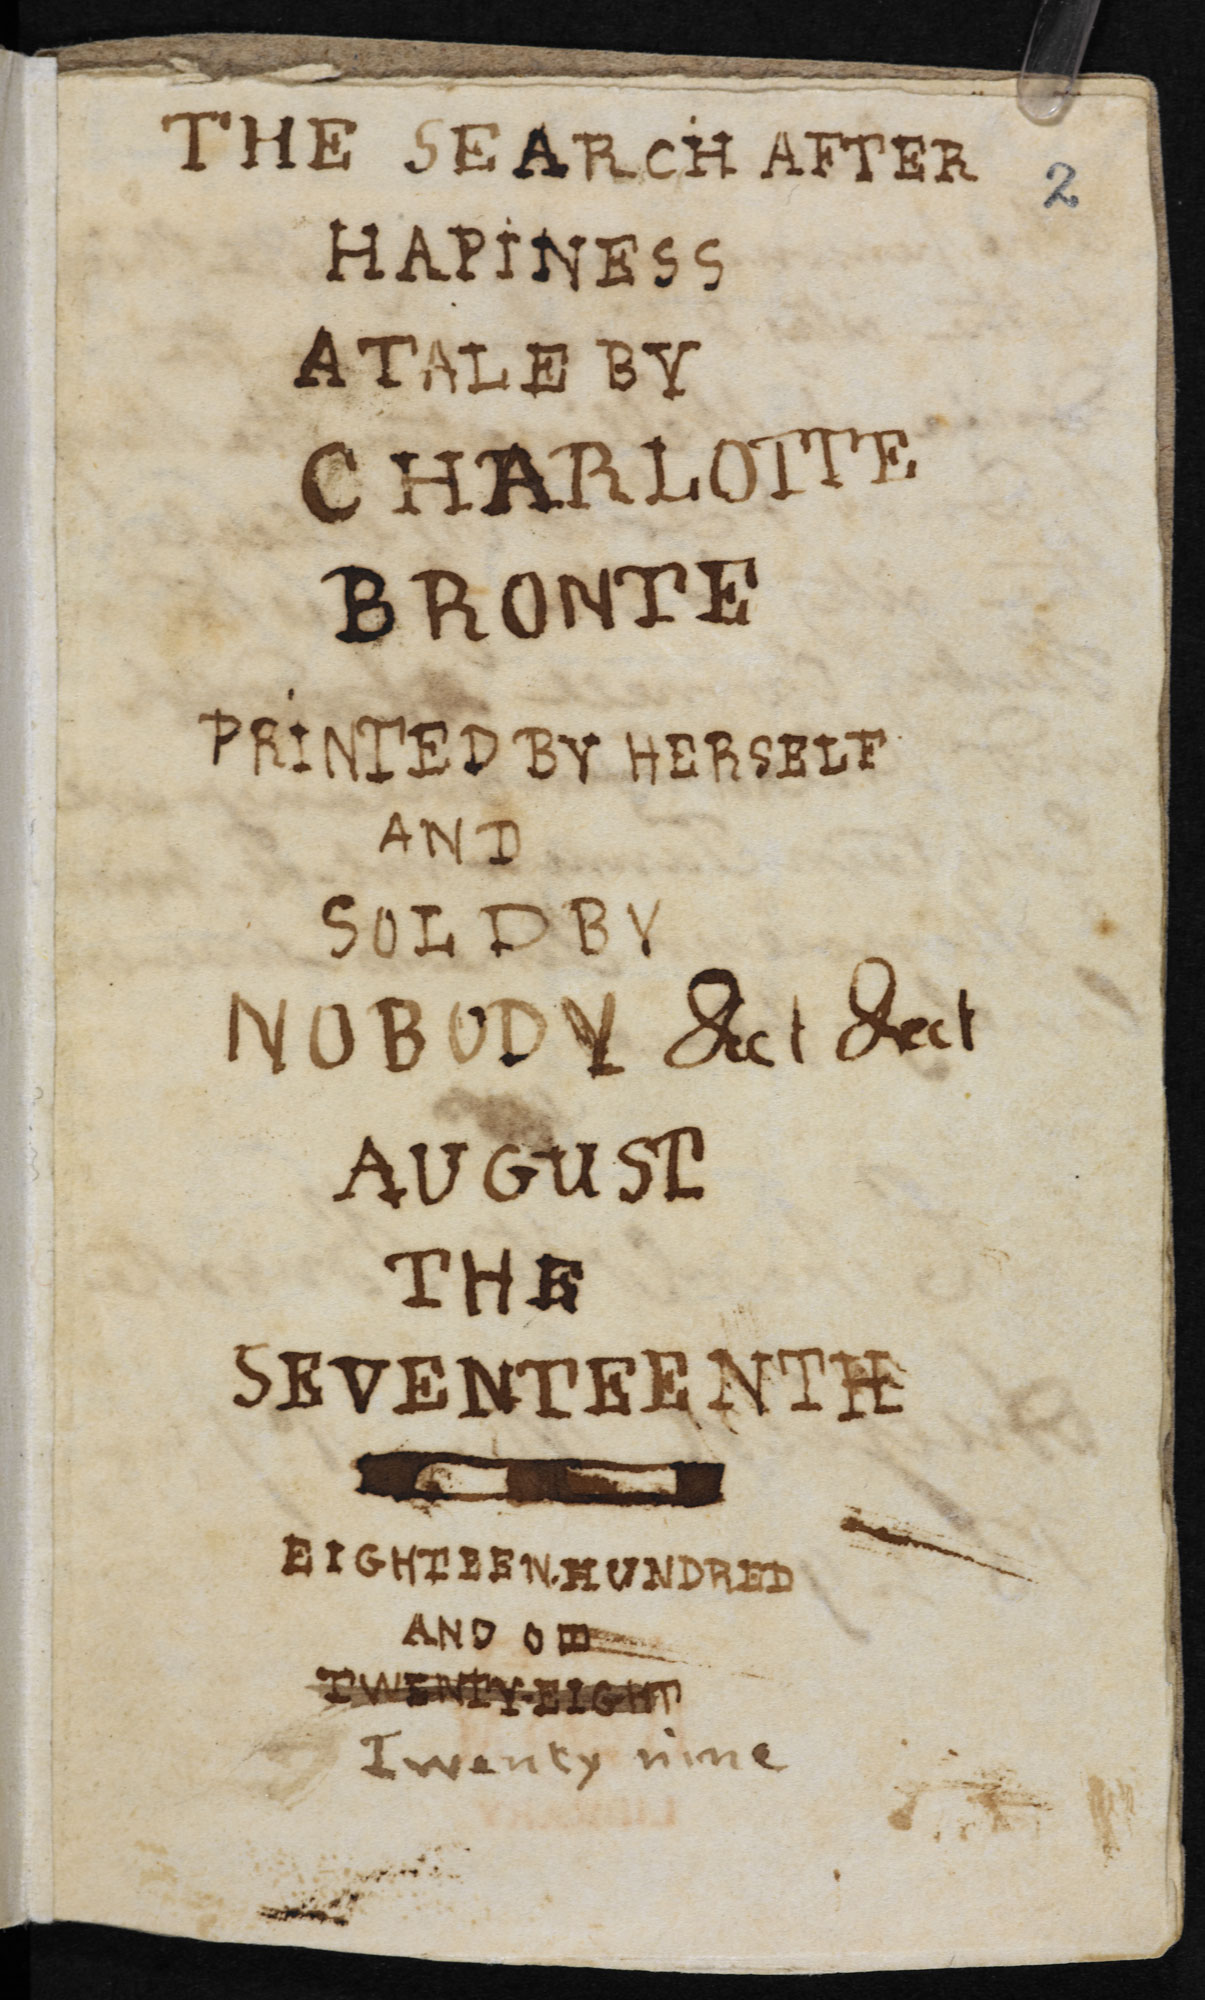 Bronte juvenilia: 'The Search after Happiness' [folio: 2r]